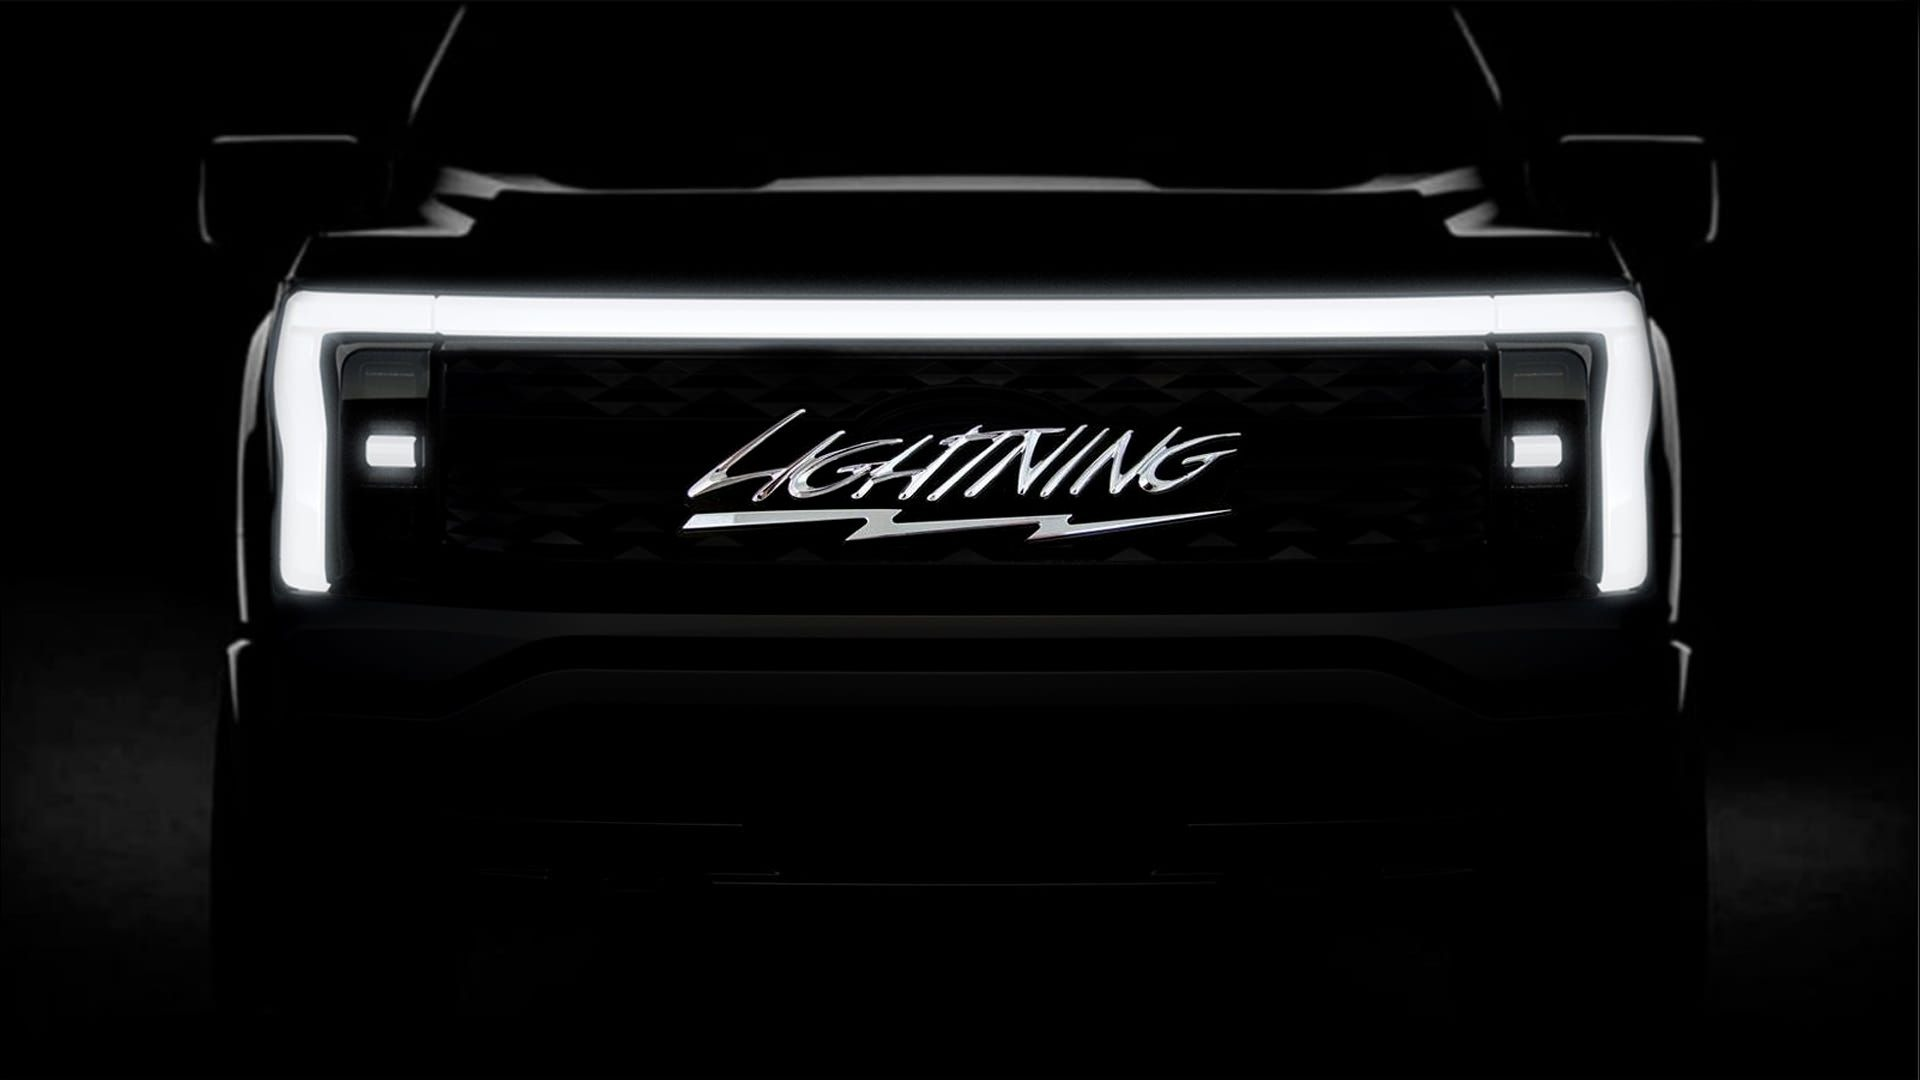 Since the latest generation of the Ford F-150 came out, there have been whispers about an upcoming fully electric and particularly powerful version of the pickup. After drip-feeding us tiny bits of information about the car, Ford has finally set the premiere date: Wednesday, May 19, 2021.